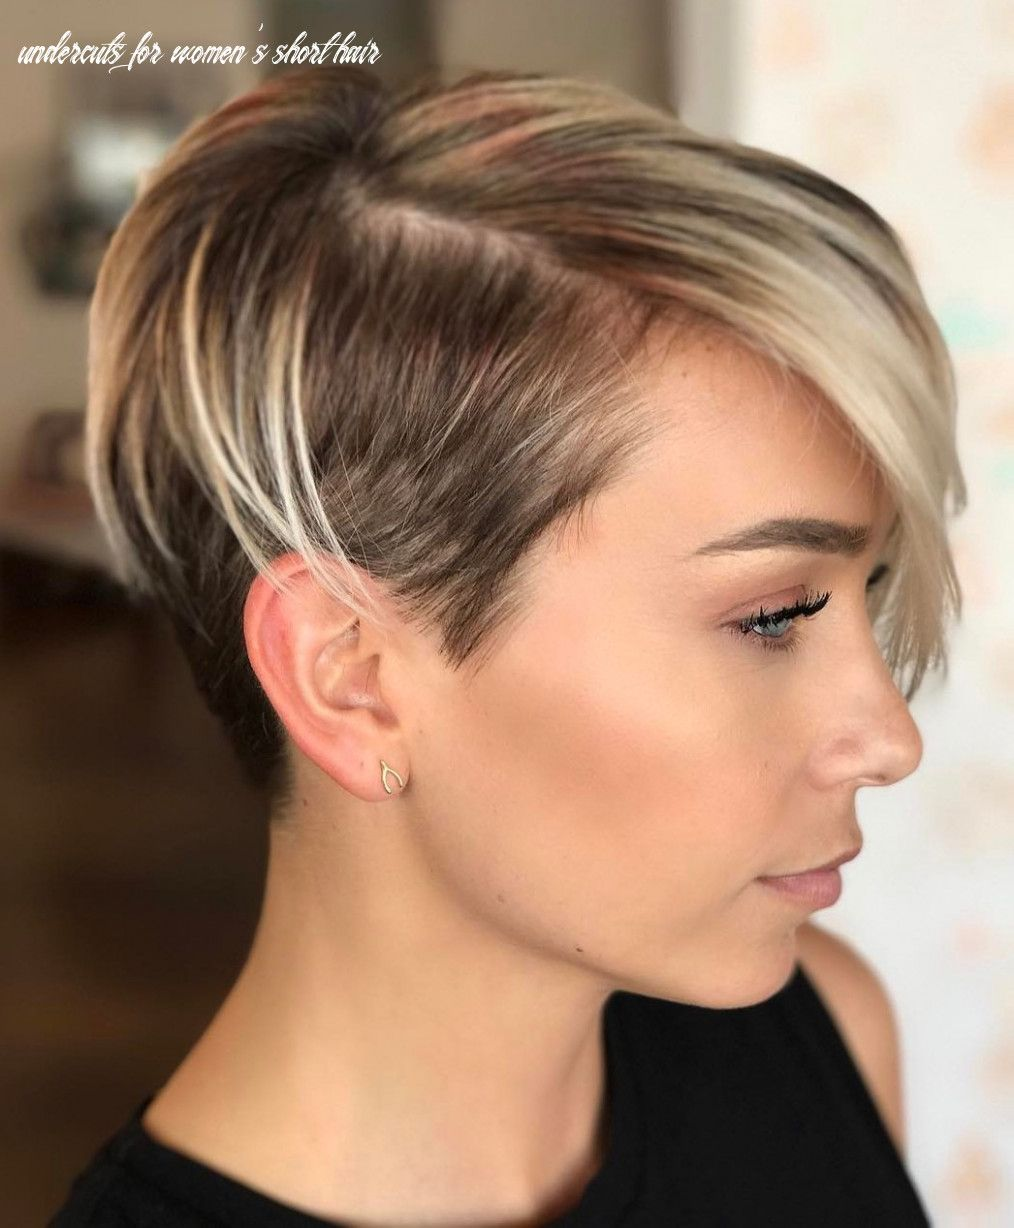 10 Undercuts For Women S Short Hair In 2020 Short Hair Undercut Fine Hair Undercut Hairstyles